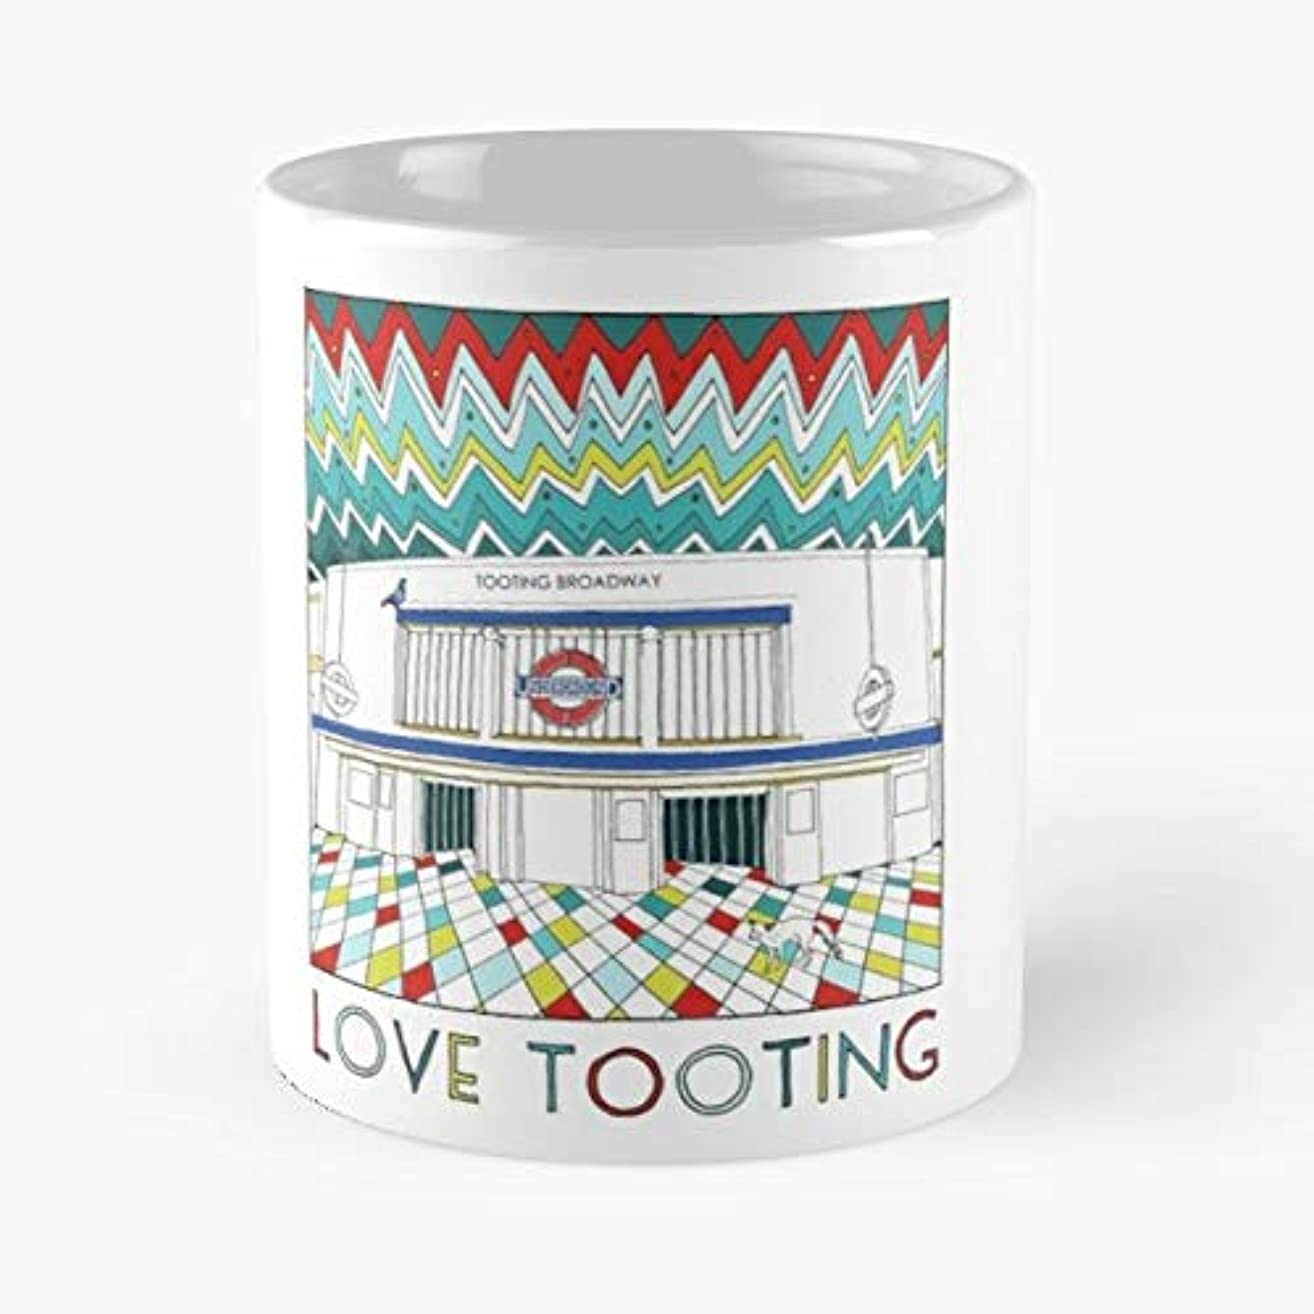 Tooting Broadway Wandsworth London - Coffee Mugs Best Gift For Father Day